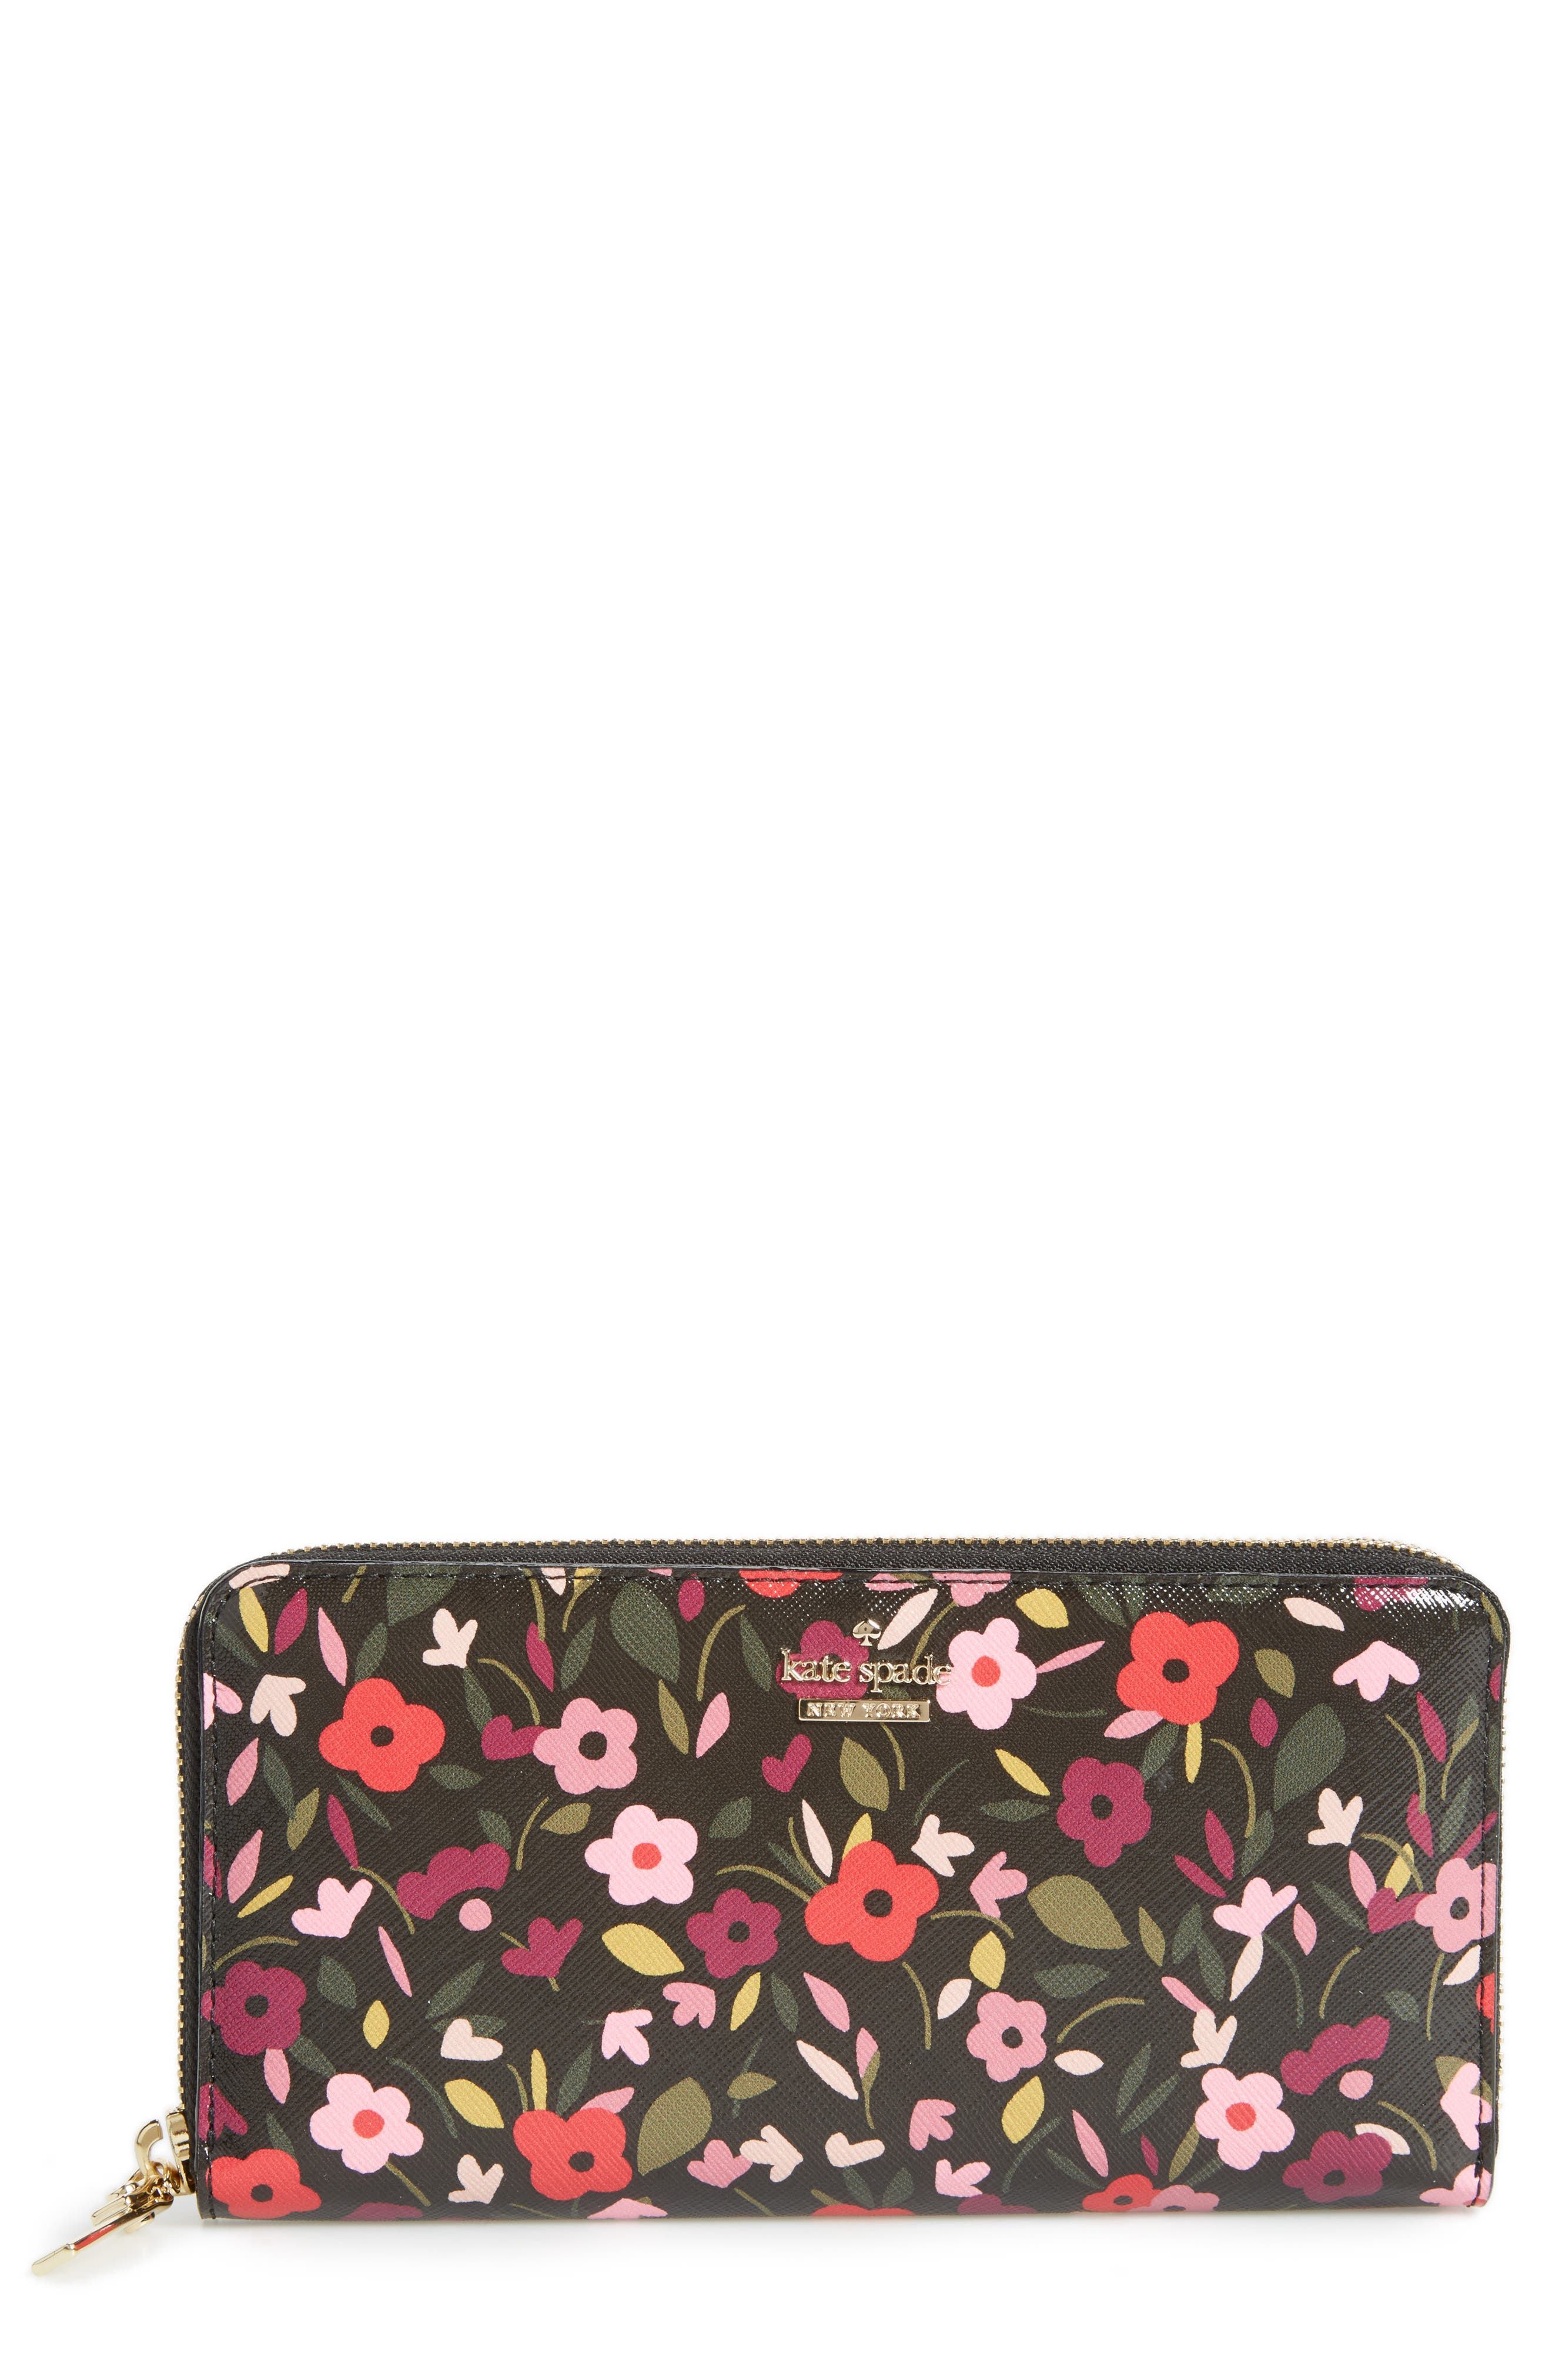 cameron street - lacey zip around wallet,                             Main thumbnail 1, color,                             001